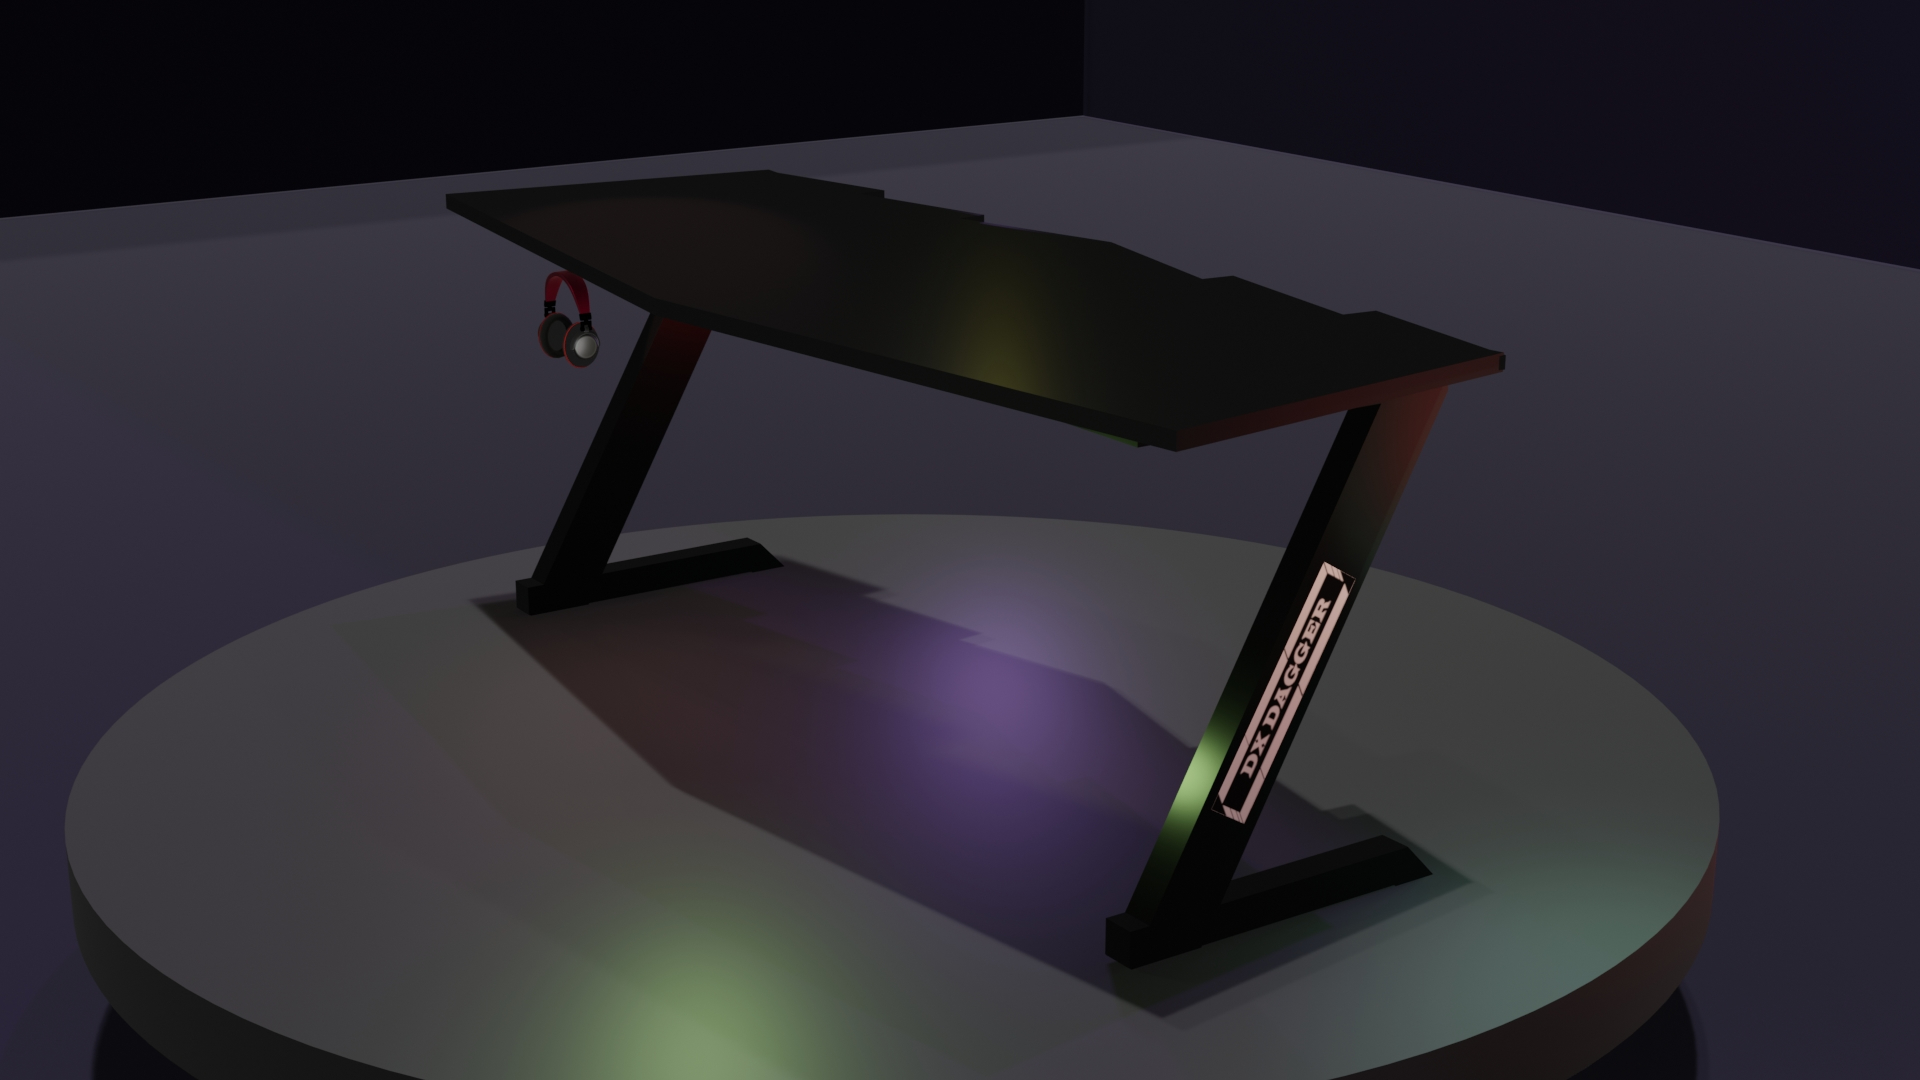 Professional Black Gaming Table 60 inches - Computer Laptop Gaming Table - RGB Remote Control Lights - Headphones Holder and Wire Management System - Branded High Quality Table for Gamers